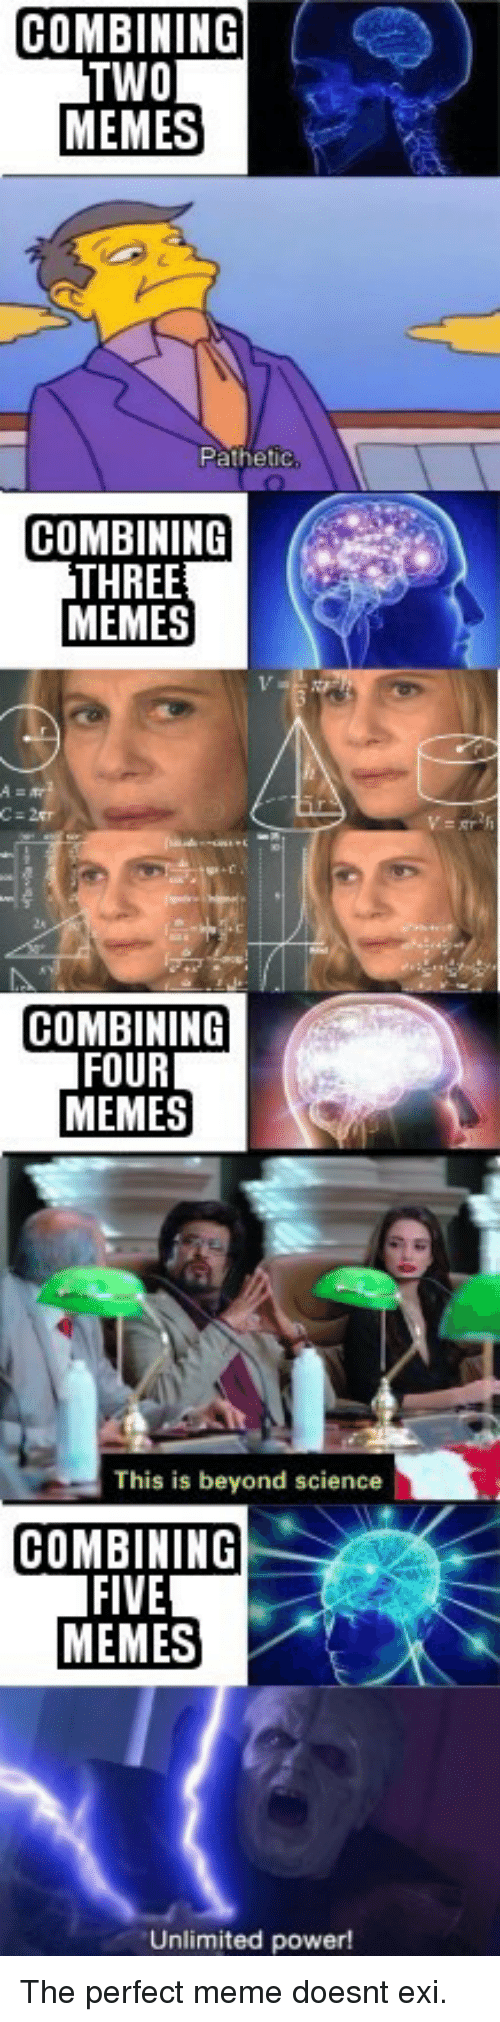 Meme, Memes, and Power: COMBININOG  TWO  MEMES  athetic  COMBINING  THREE  MEMES  C-2  COMBINING  FOUR  MEMES  This is beyond science  OMBINING  FIVE  MEMES  Unlimited power! The perfect meme doesnt exi.